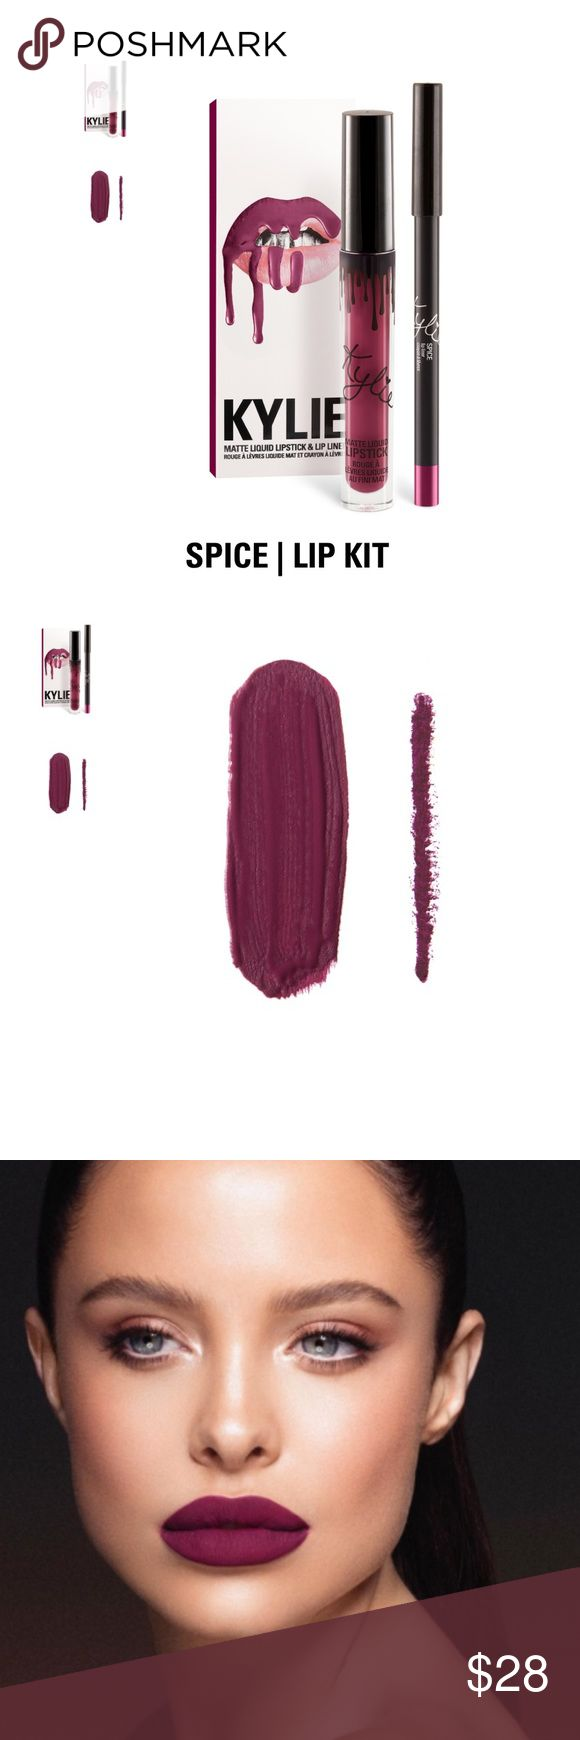 Authentic Kylie Jenner Lip Kit In Spice